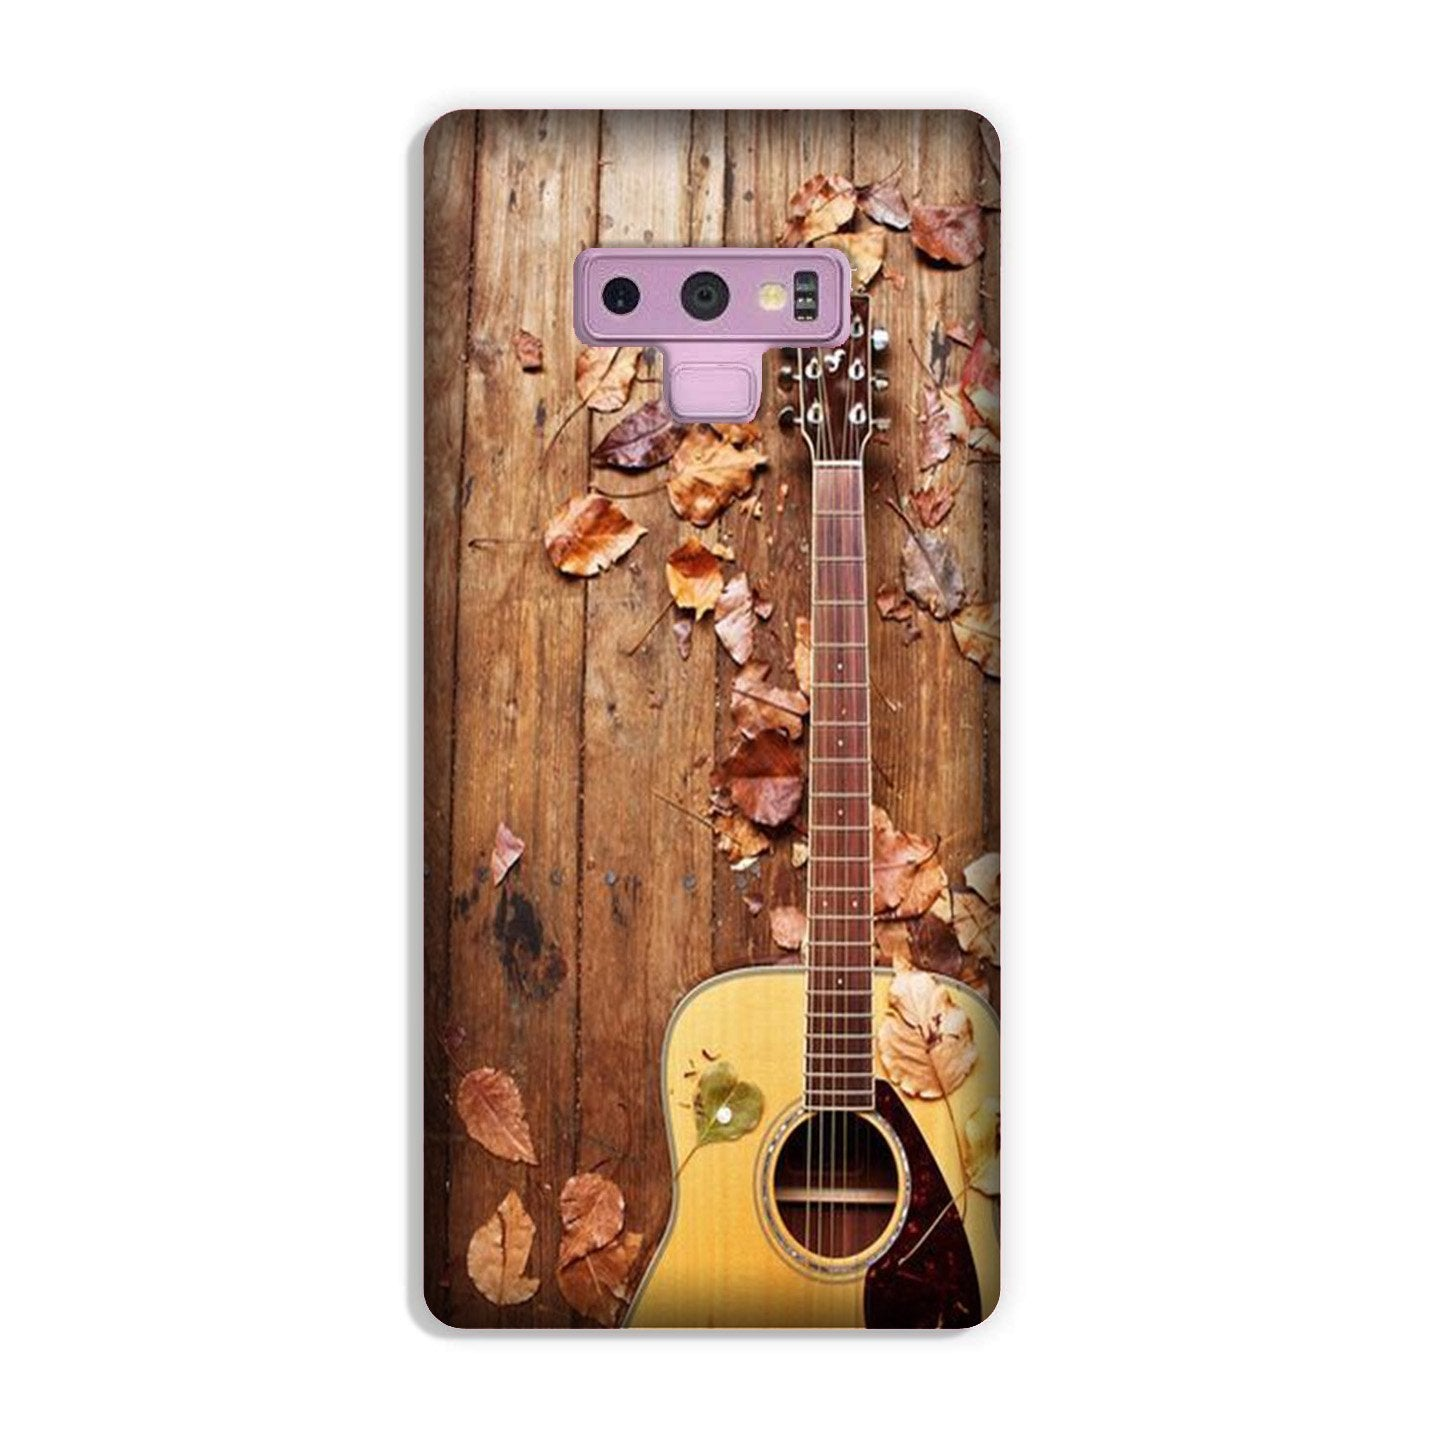 Guitar Case for Galaxy Note 9